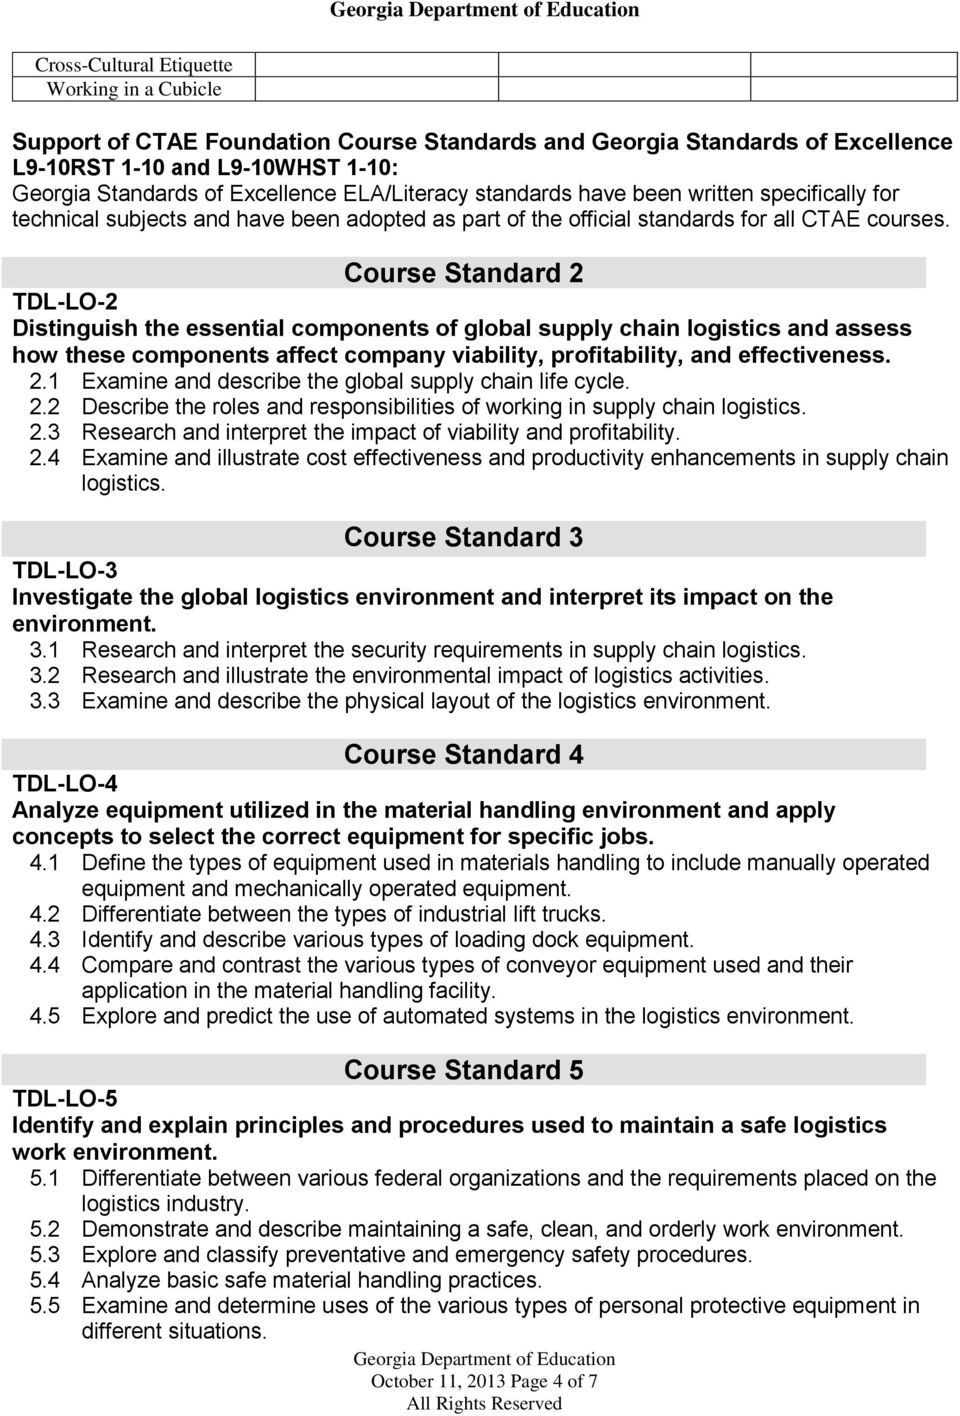 Course Standard 2 TDL-LO-2 Distinguish the essential components of global supply chain logistics and assess how these components affect company viability, profitability, and effectiveness. 2.1 Examine and describe the global supply chain life cycle.